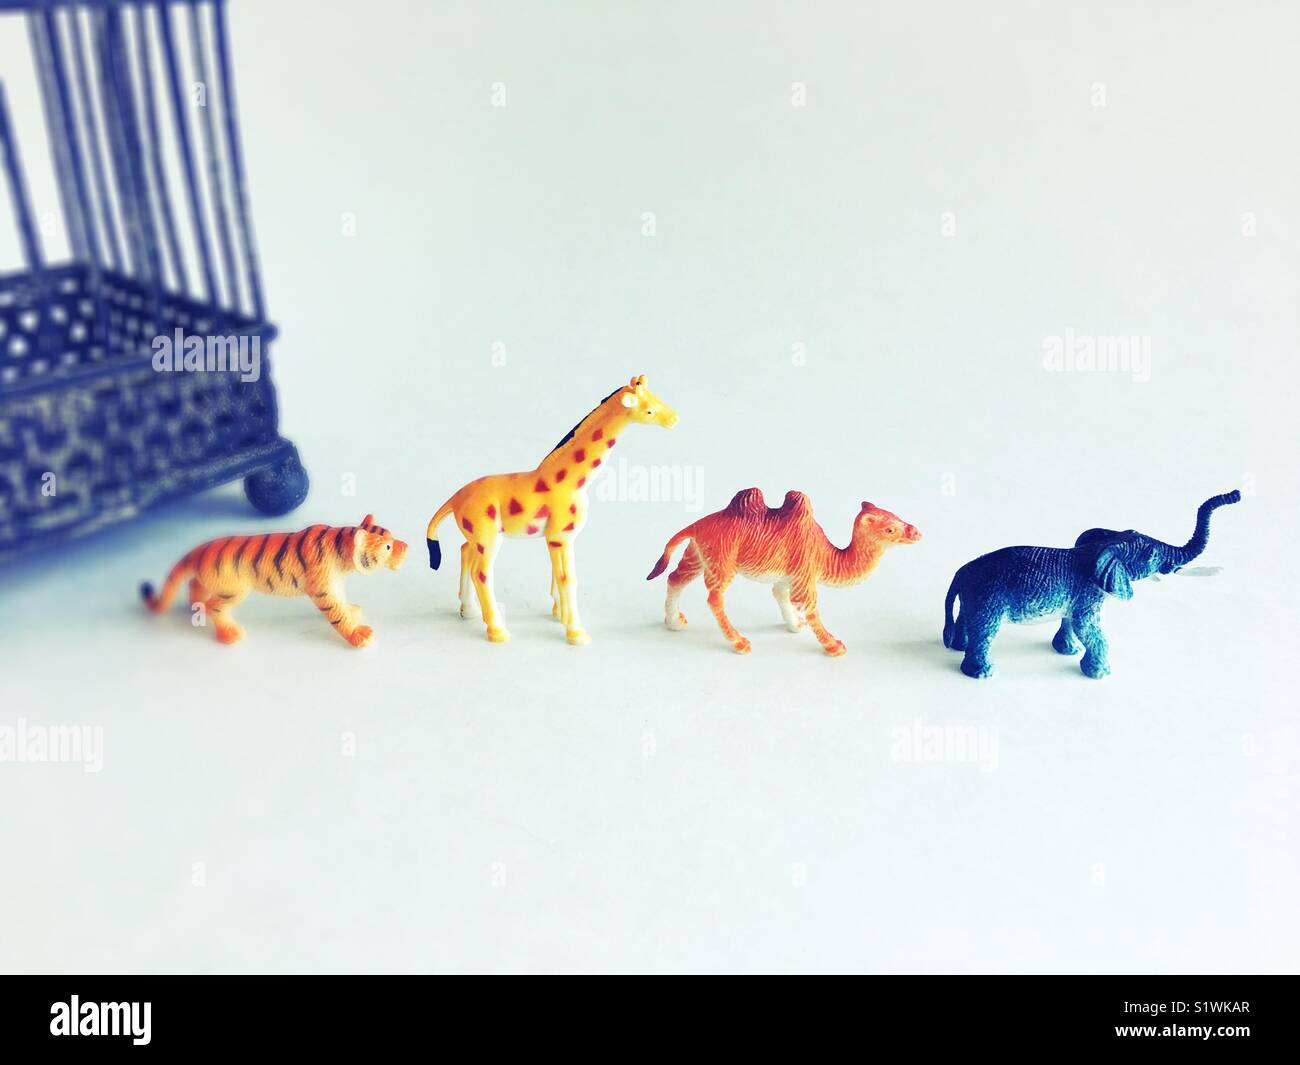 Toy wild animals walking away from a cage. - Stock Image